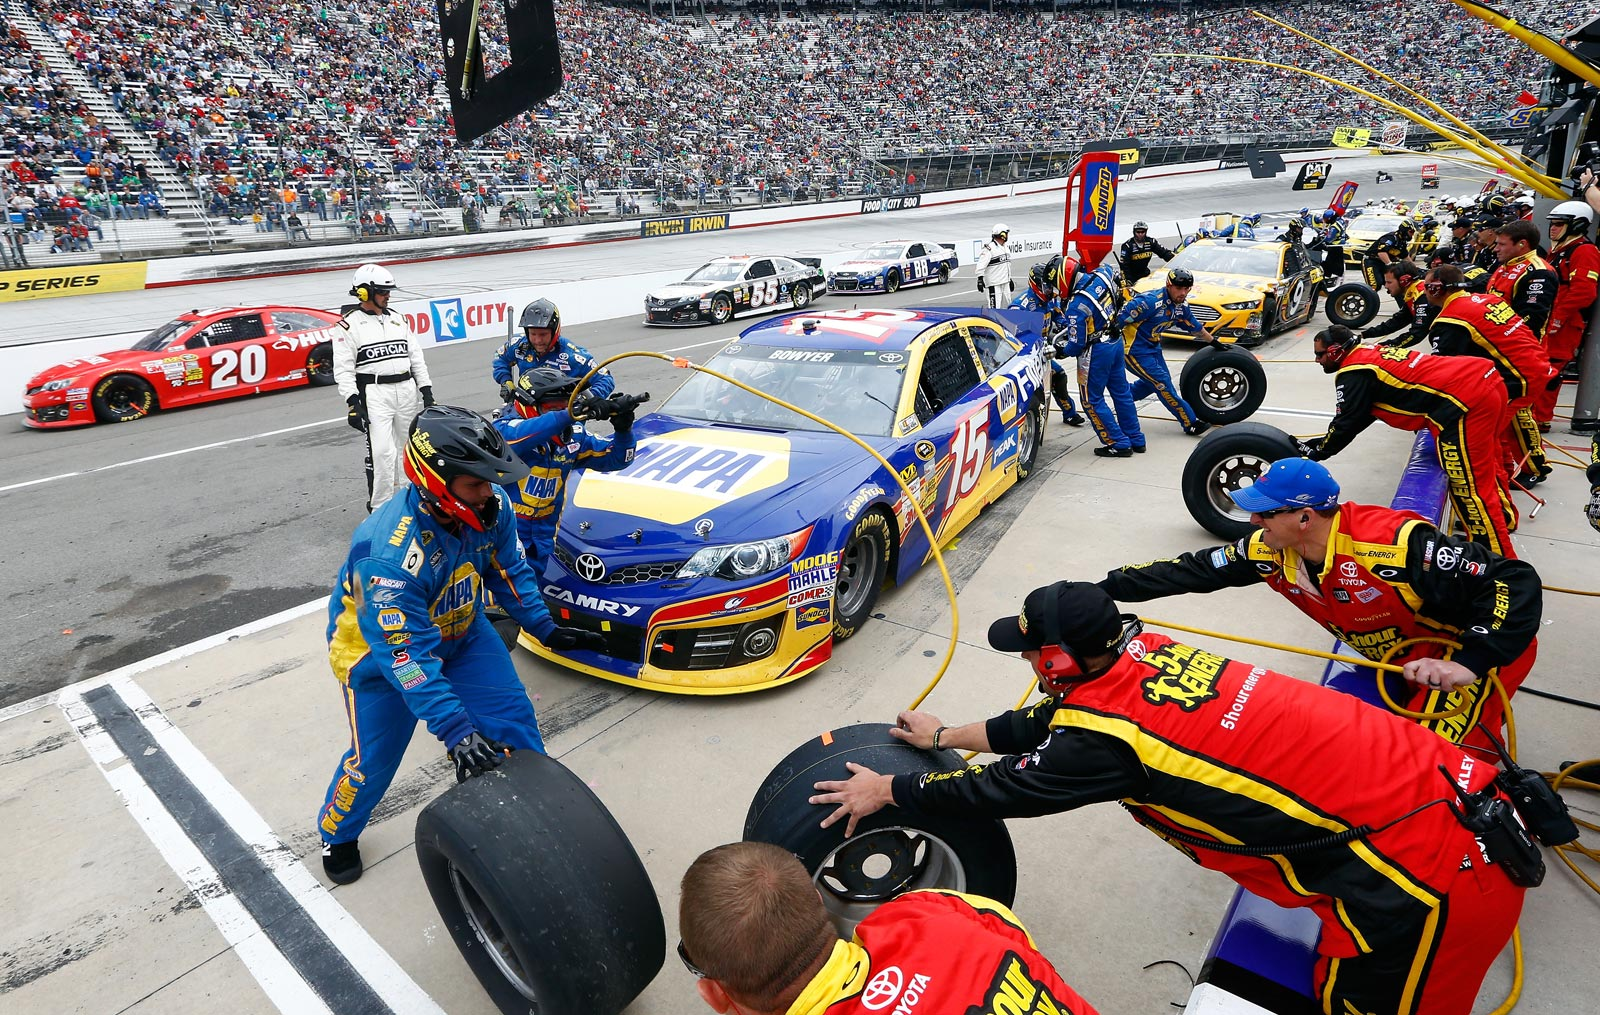 2013-Bristol-March-Clint-Bowyer-Pit-Stop